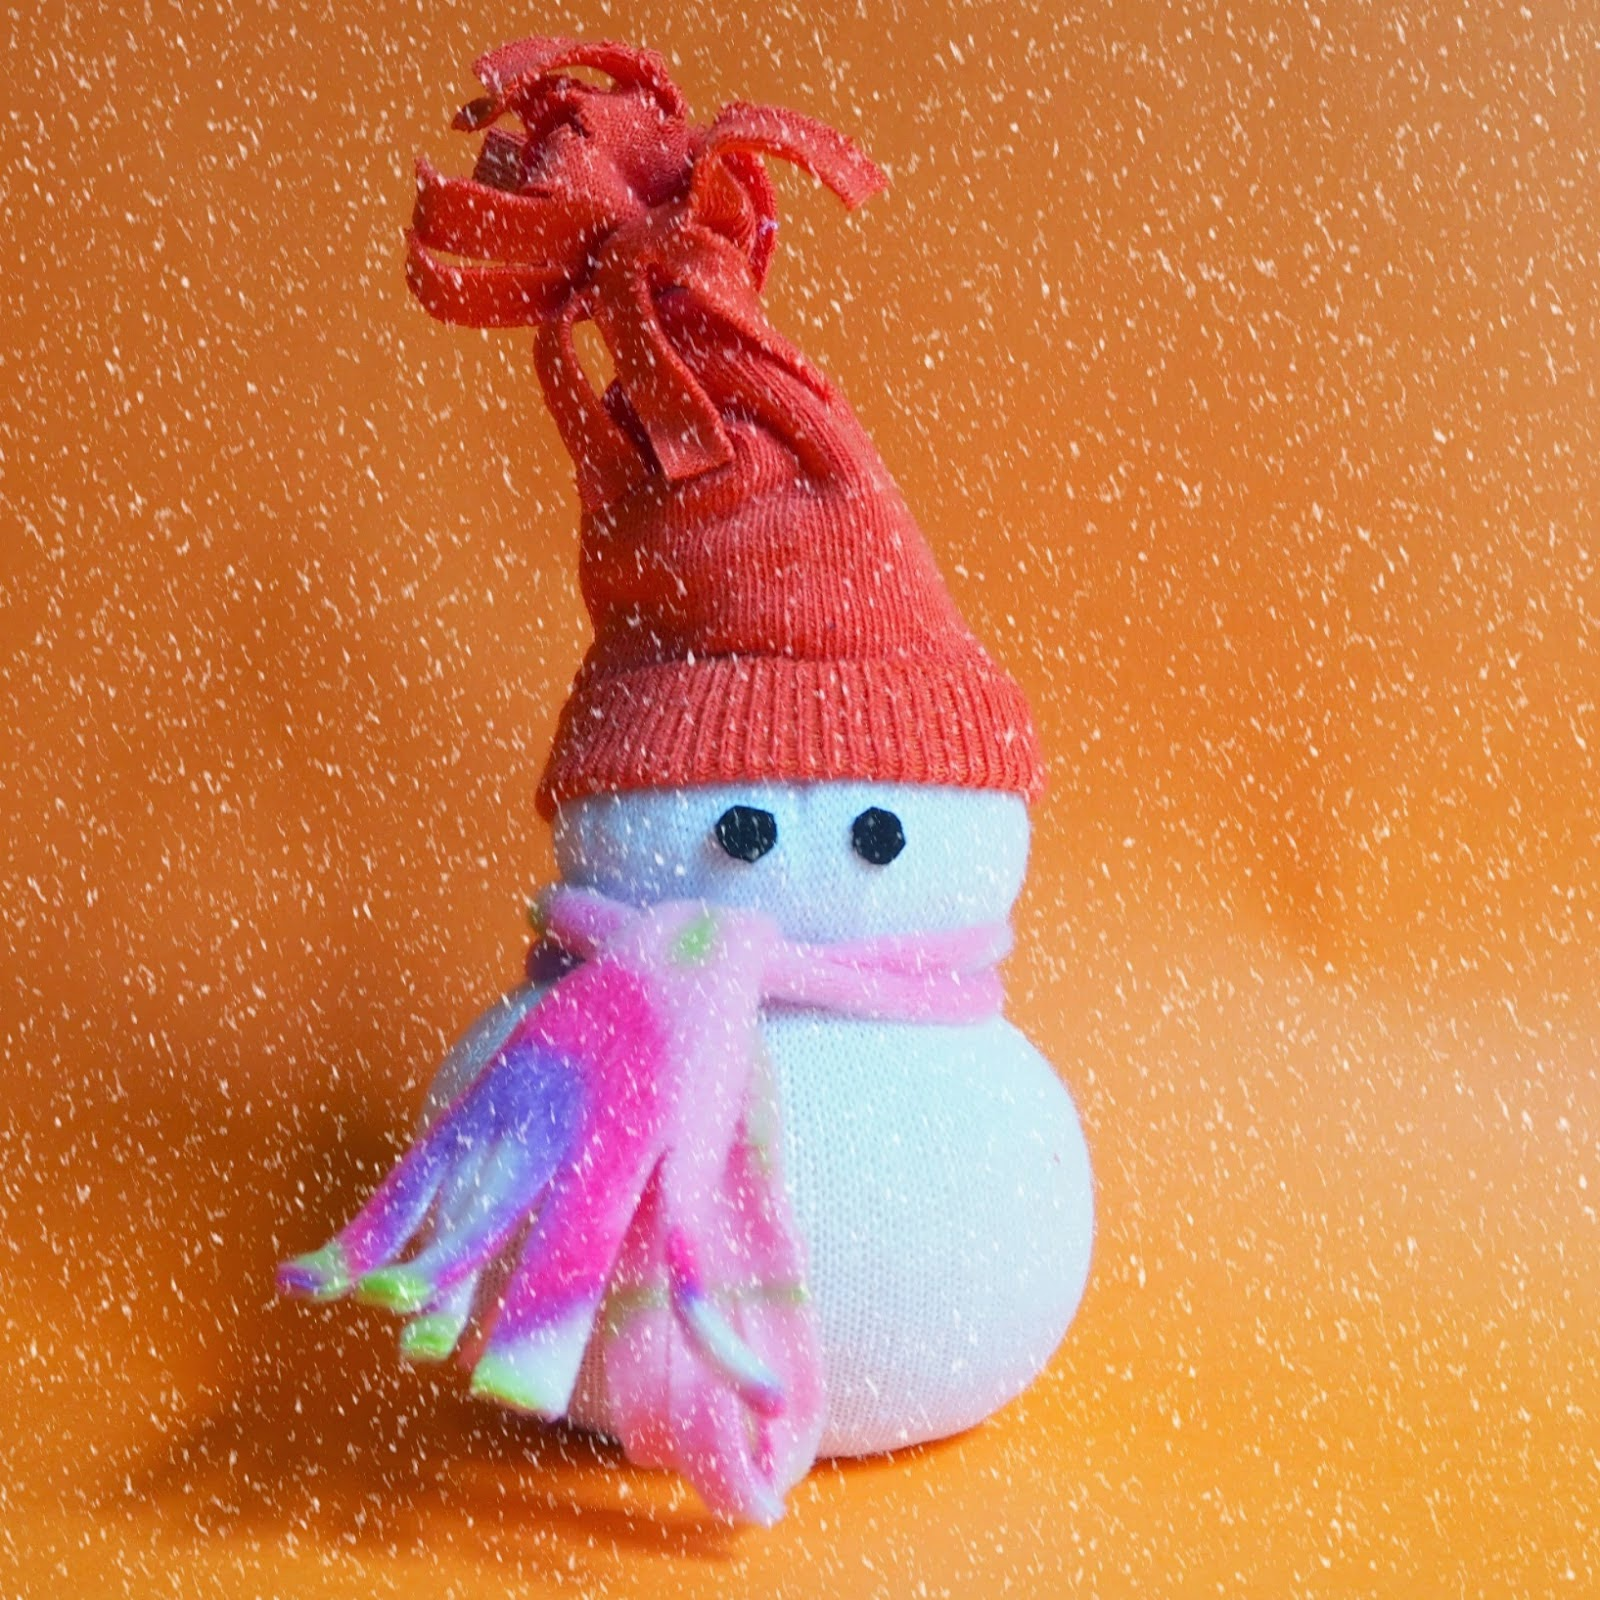 http://www.colouredbuttons.com/2014/11/no-sew-sock-snowman-from-downunder.html